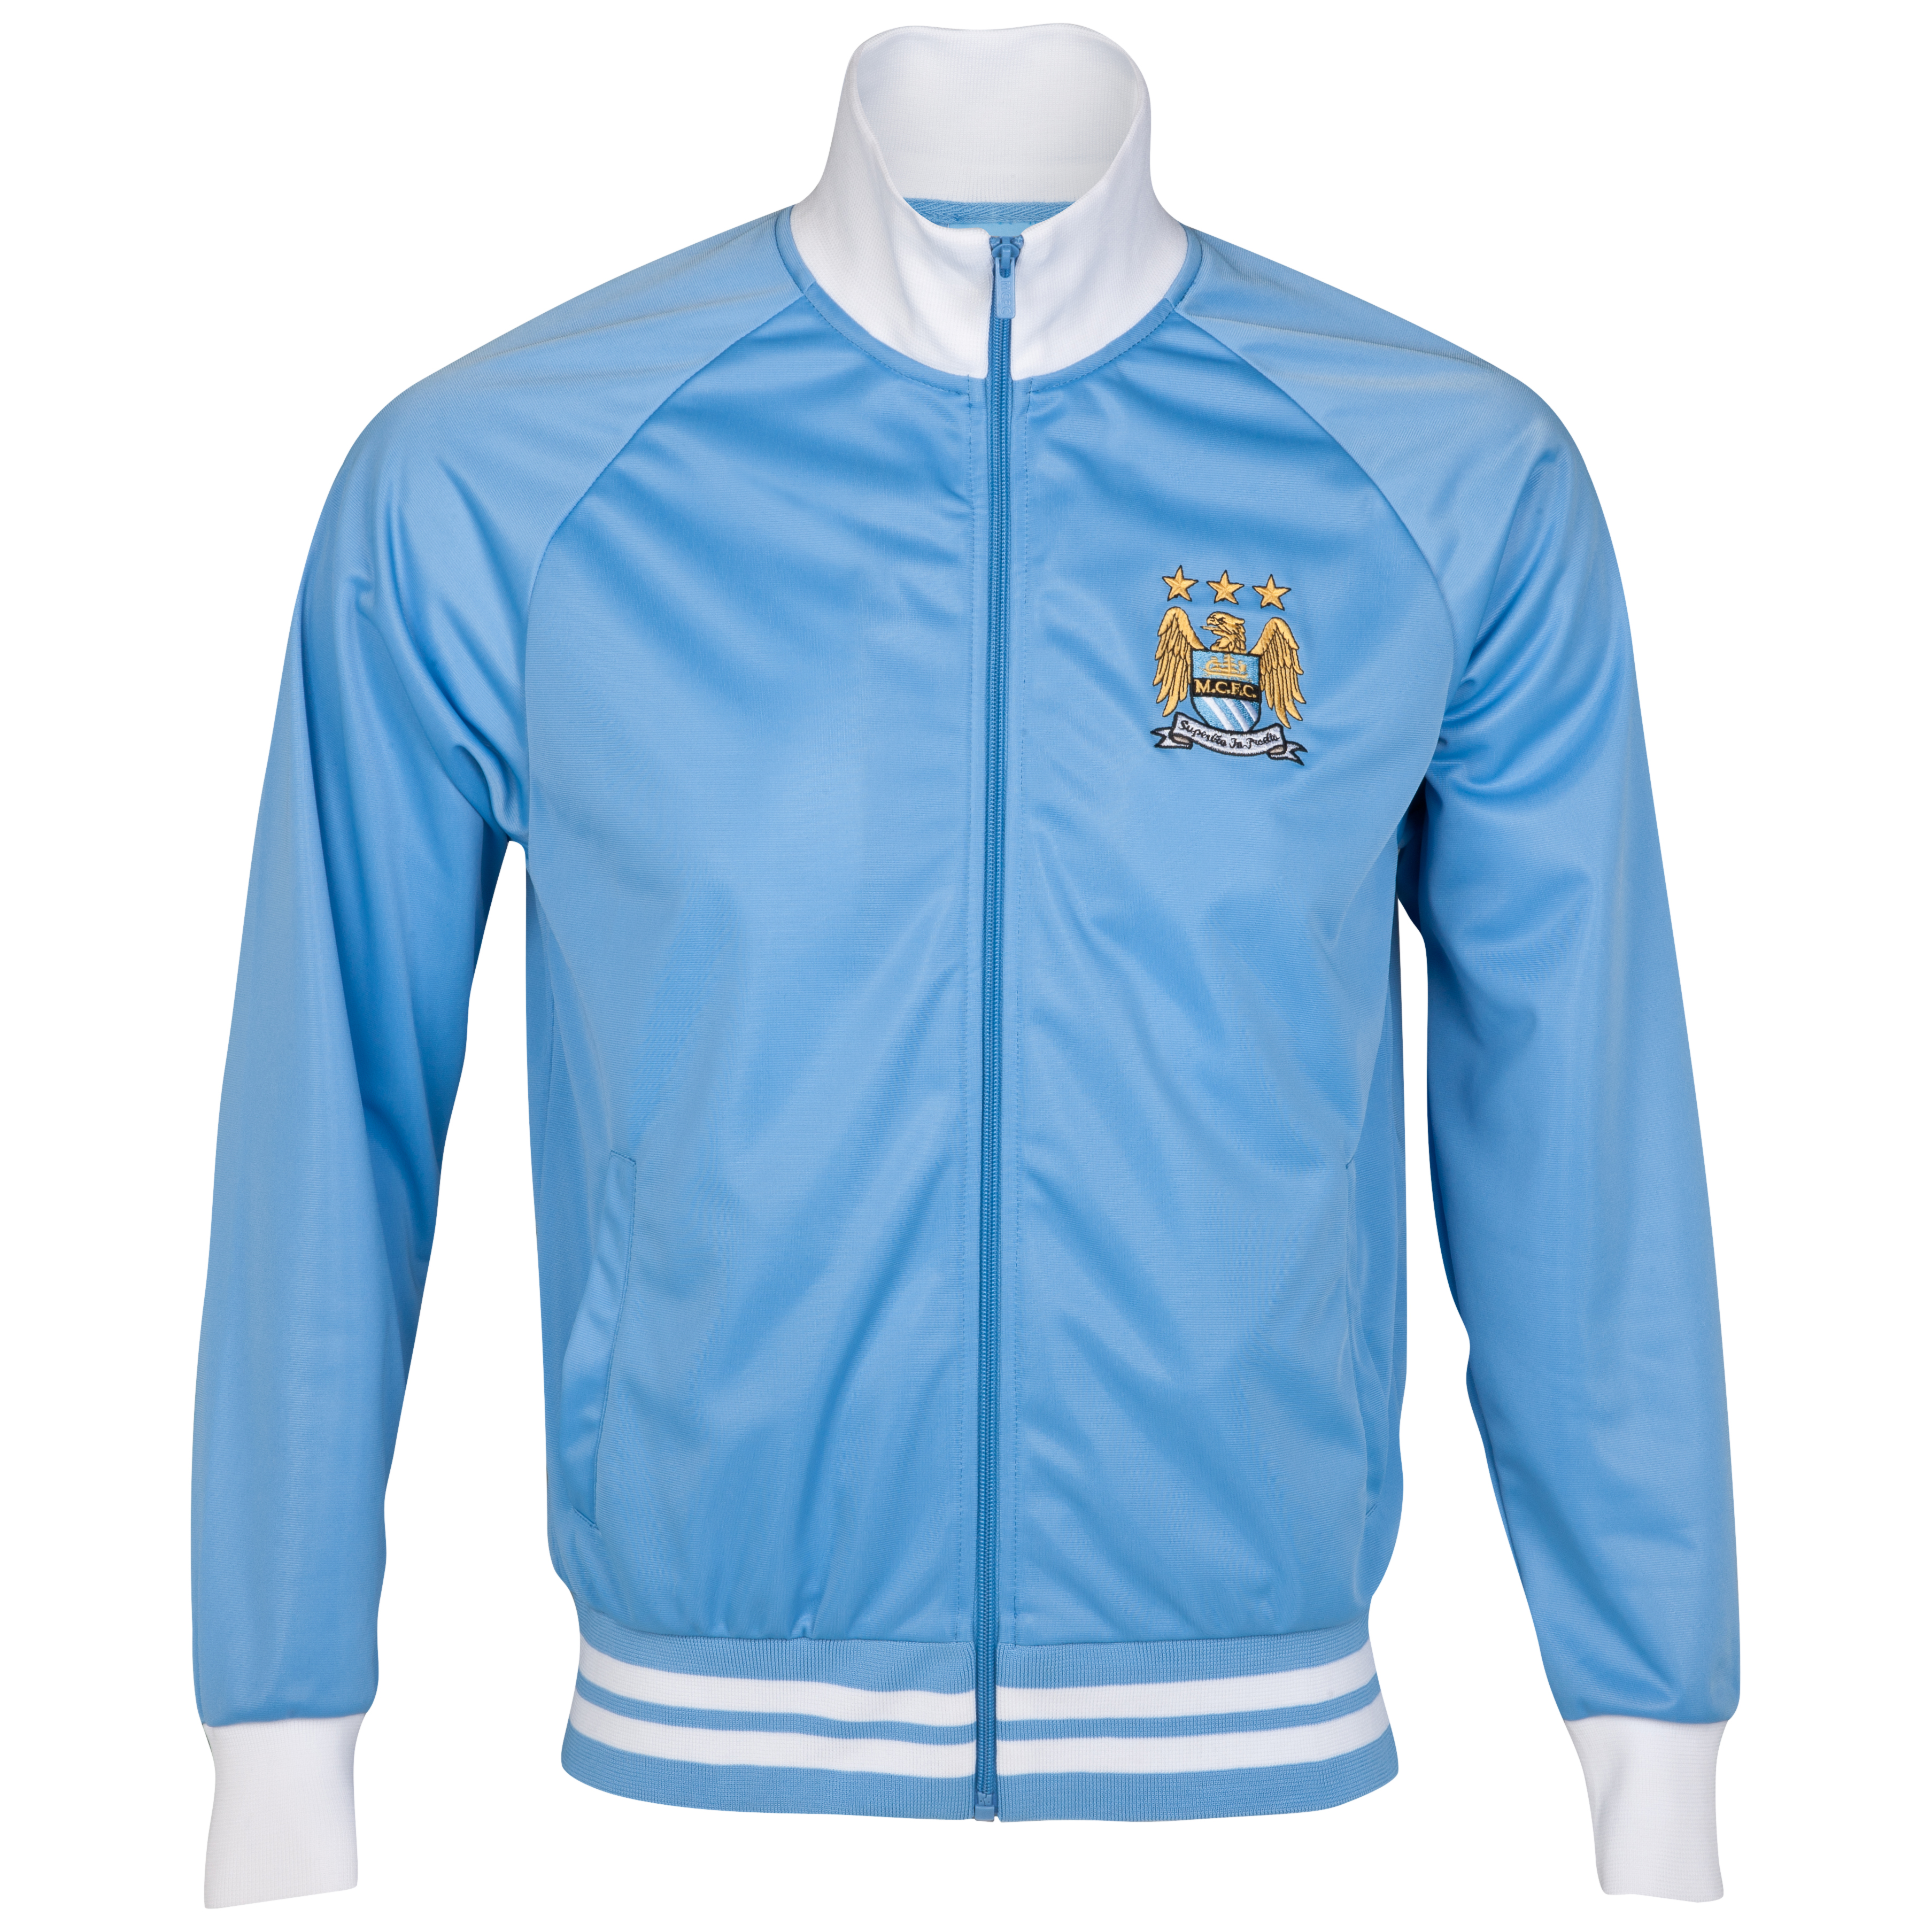 Manchester City Essential Park Track Top - White/Sky